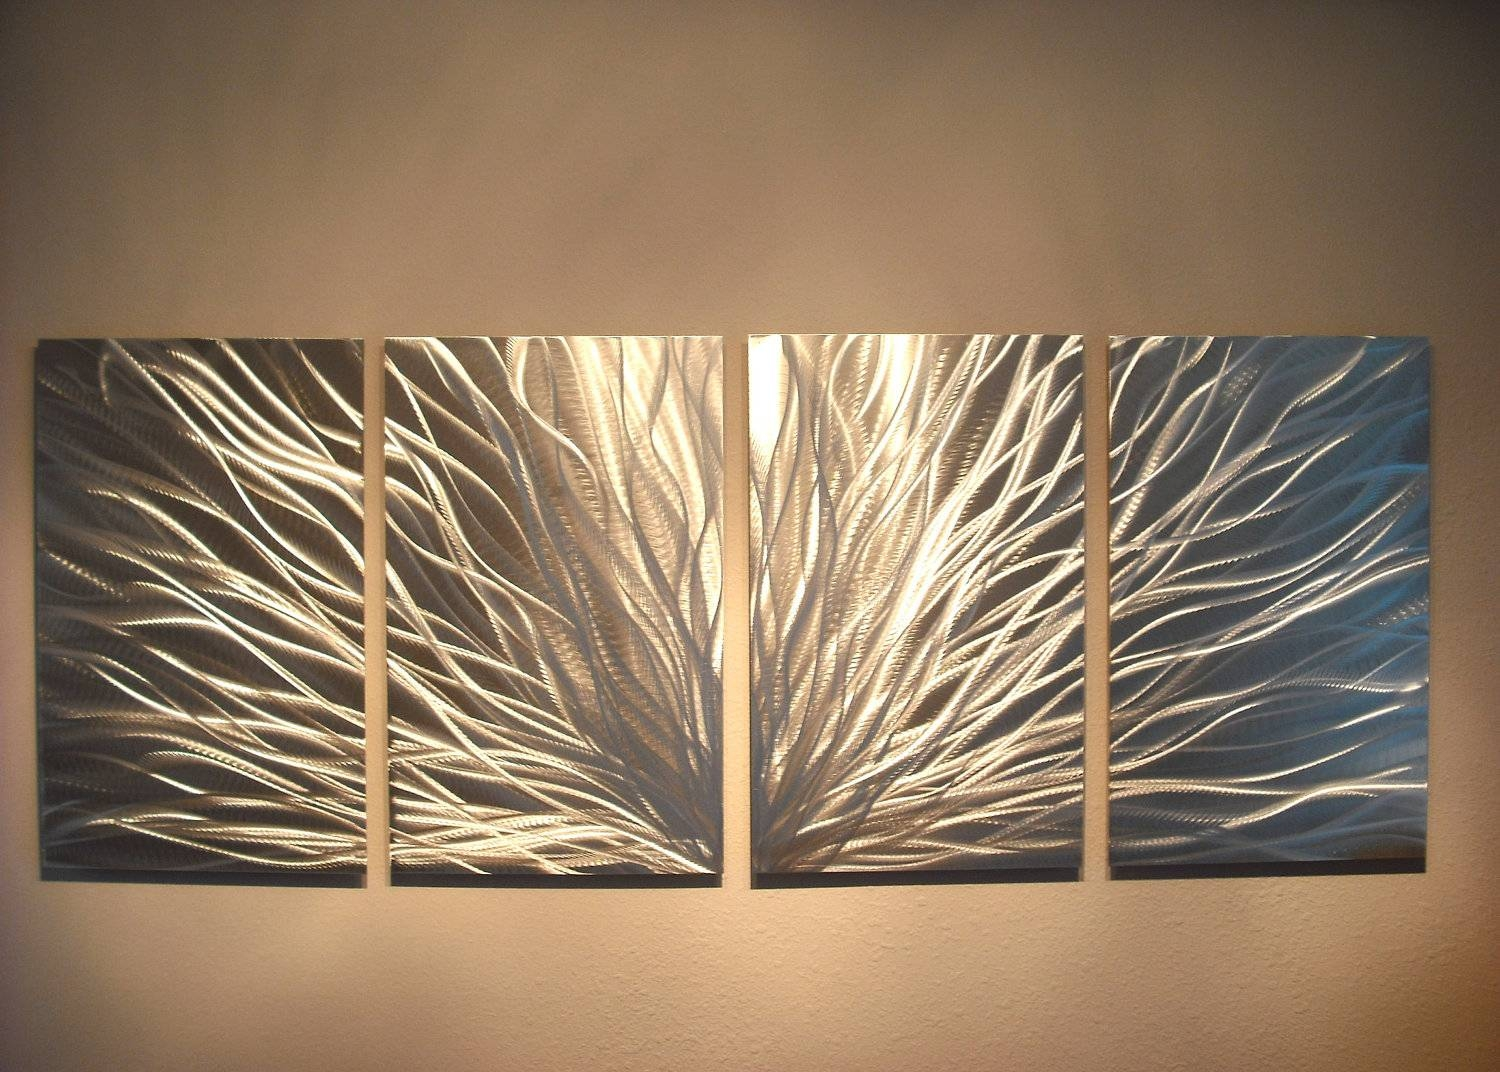 Metal Wall Art Decor Abstract Aluminum Contemporary Modern Within Recent Sheet Metal Wall Art (View 10 of 20)